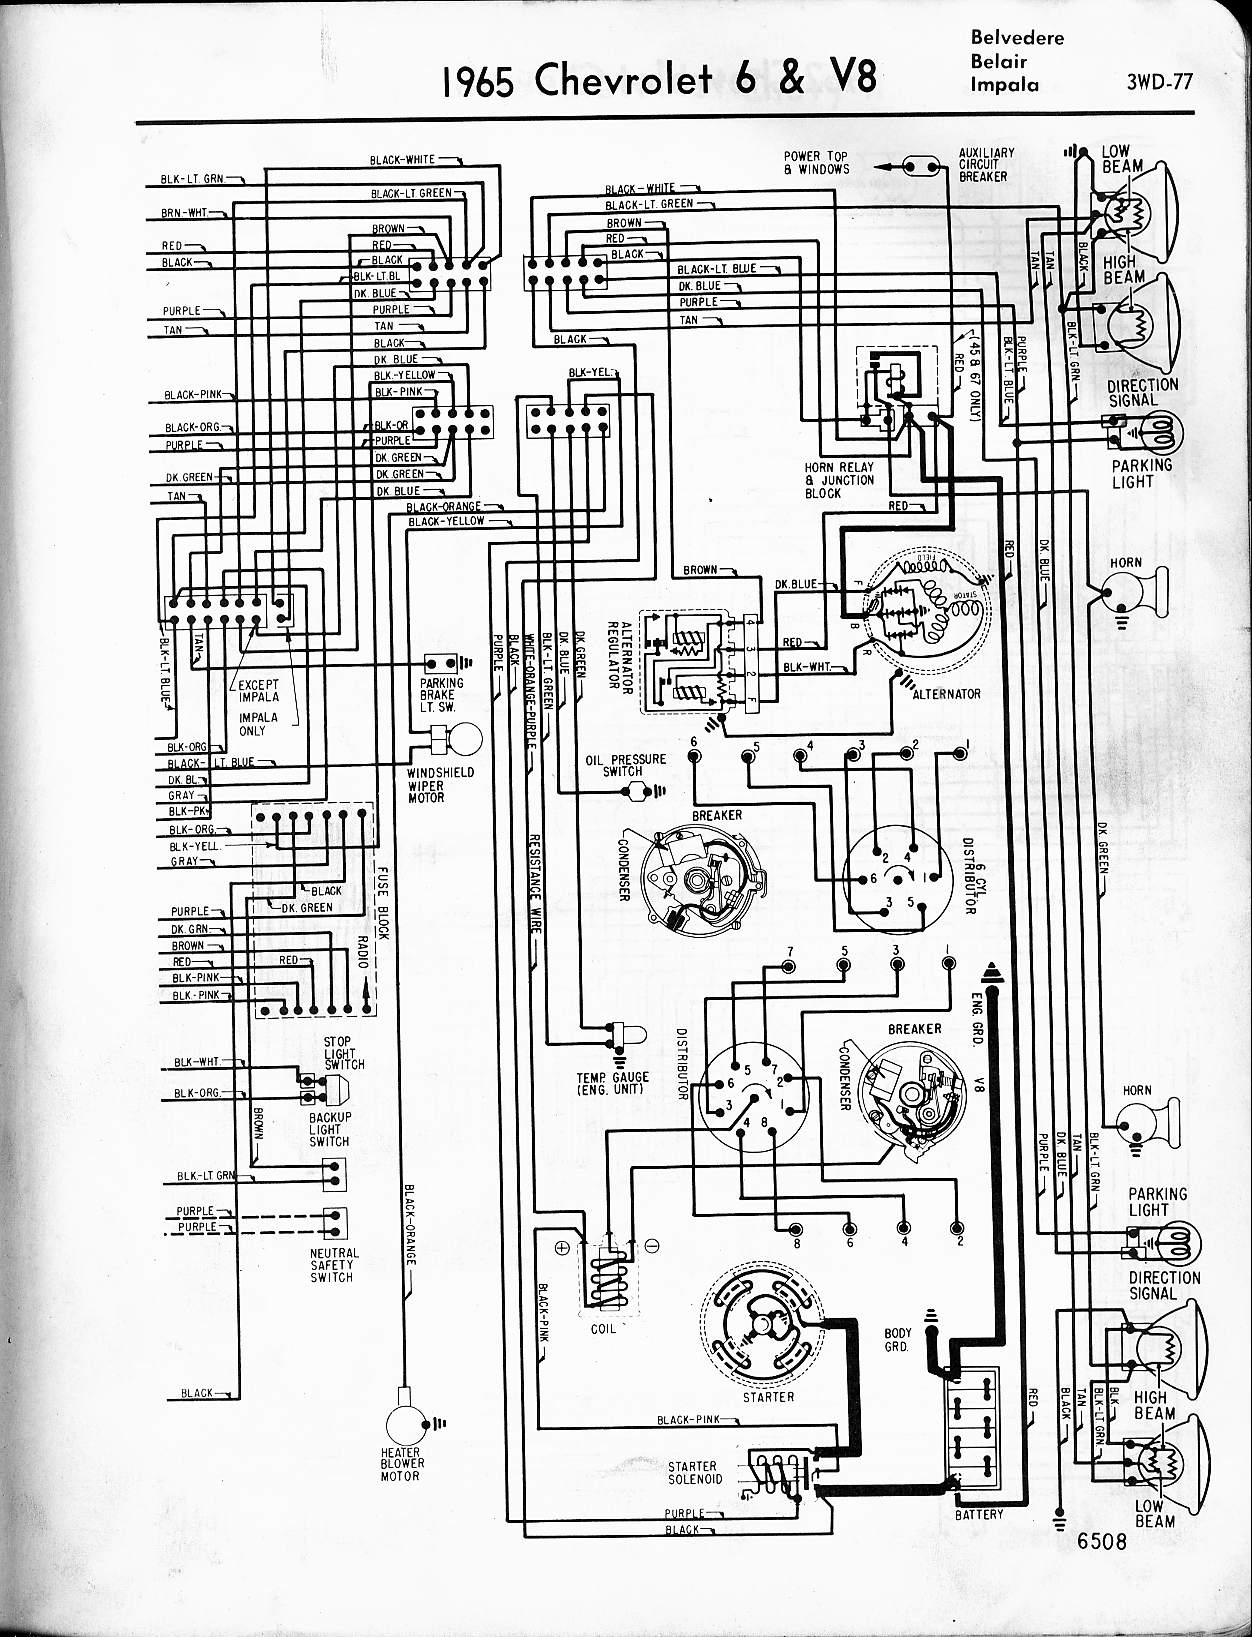 MWireChev65_3WD 077 1970 chevy truck headlight wiring diagram wiring diagram simonand chevrolet wiring harness at aneh.co